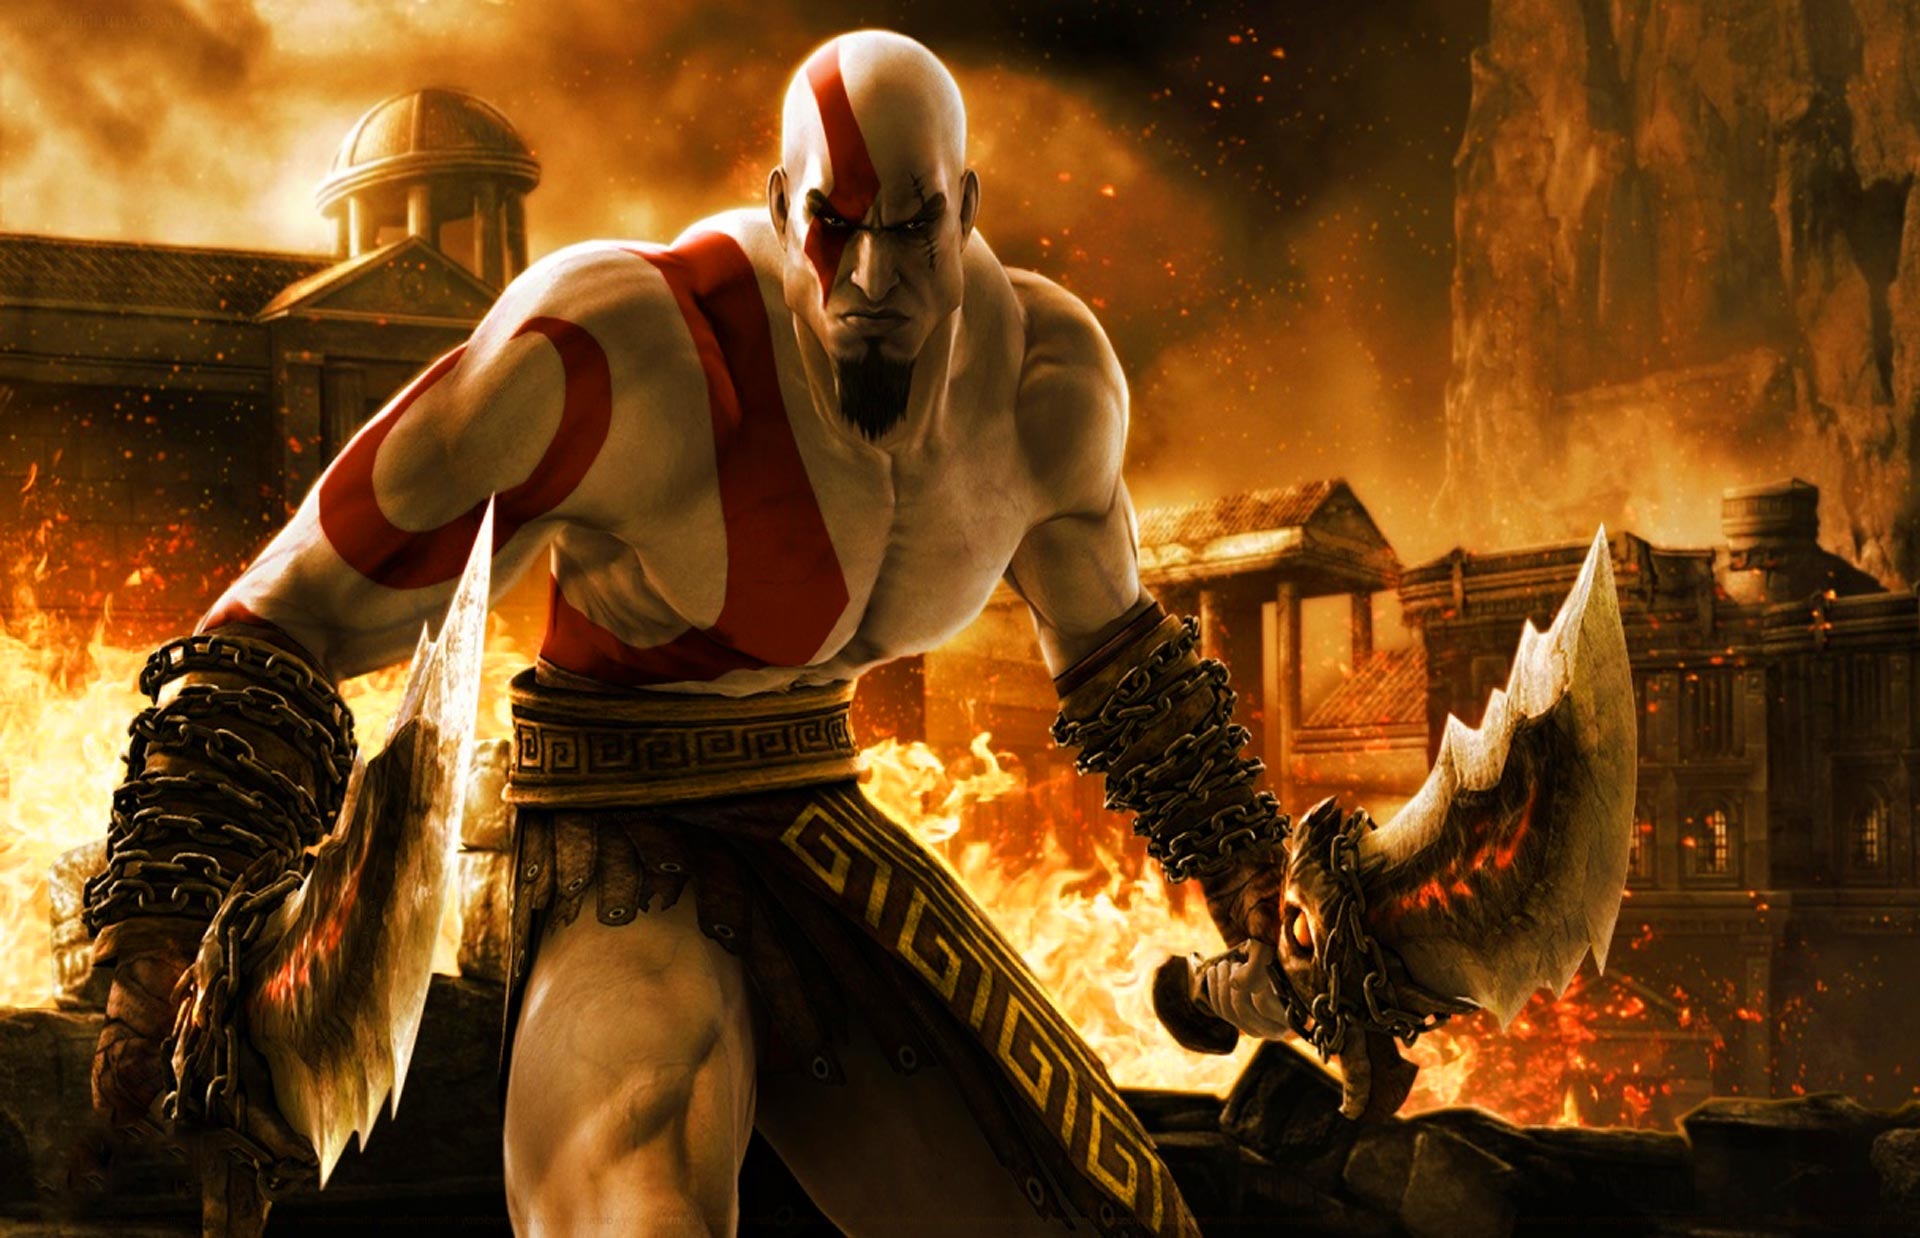 kratos god of war 32107 hd wallpapers background